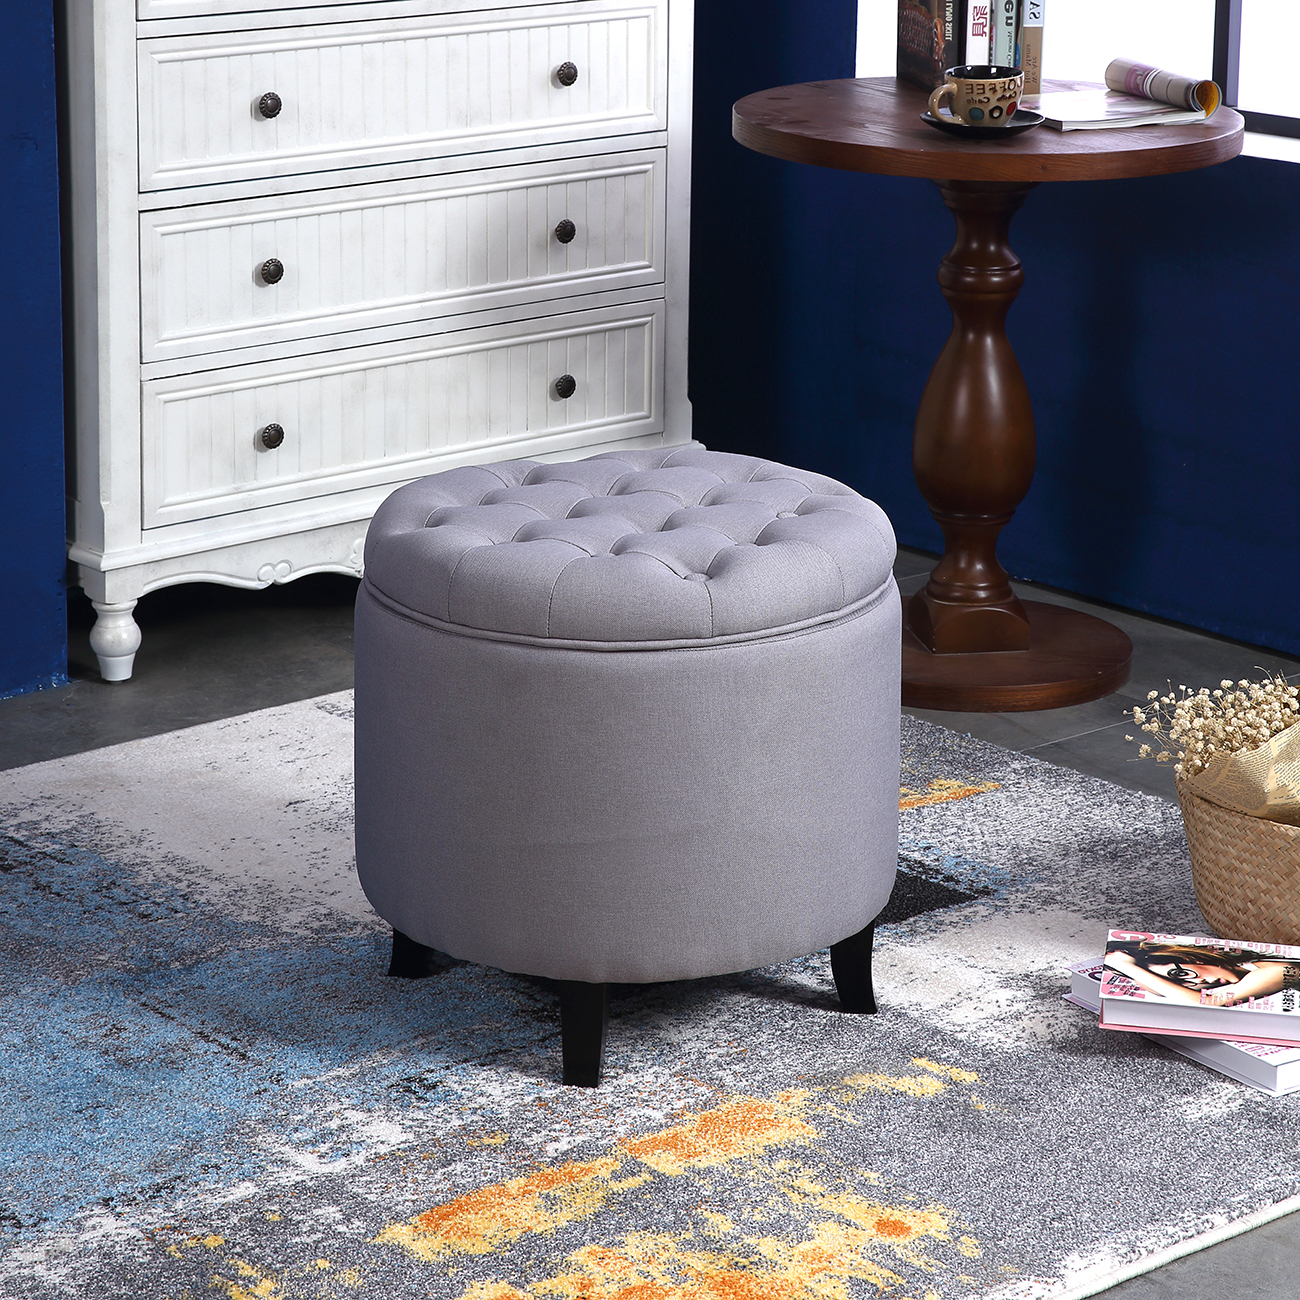 Elegant Fabric Tufted Button Ottoman Round Footstool Coffee Table Regarding Well Known Round Button Tufted Coffee Tables (View 13 of 20)